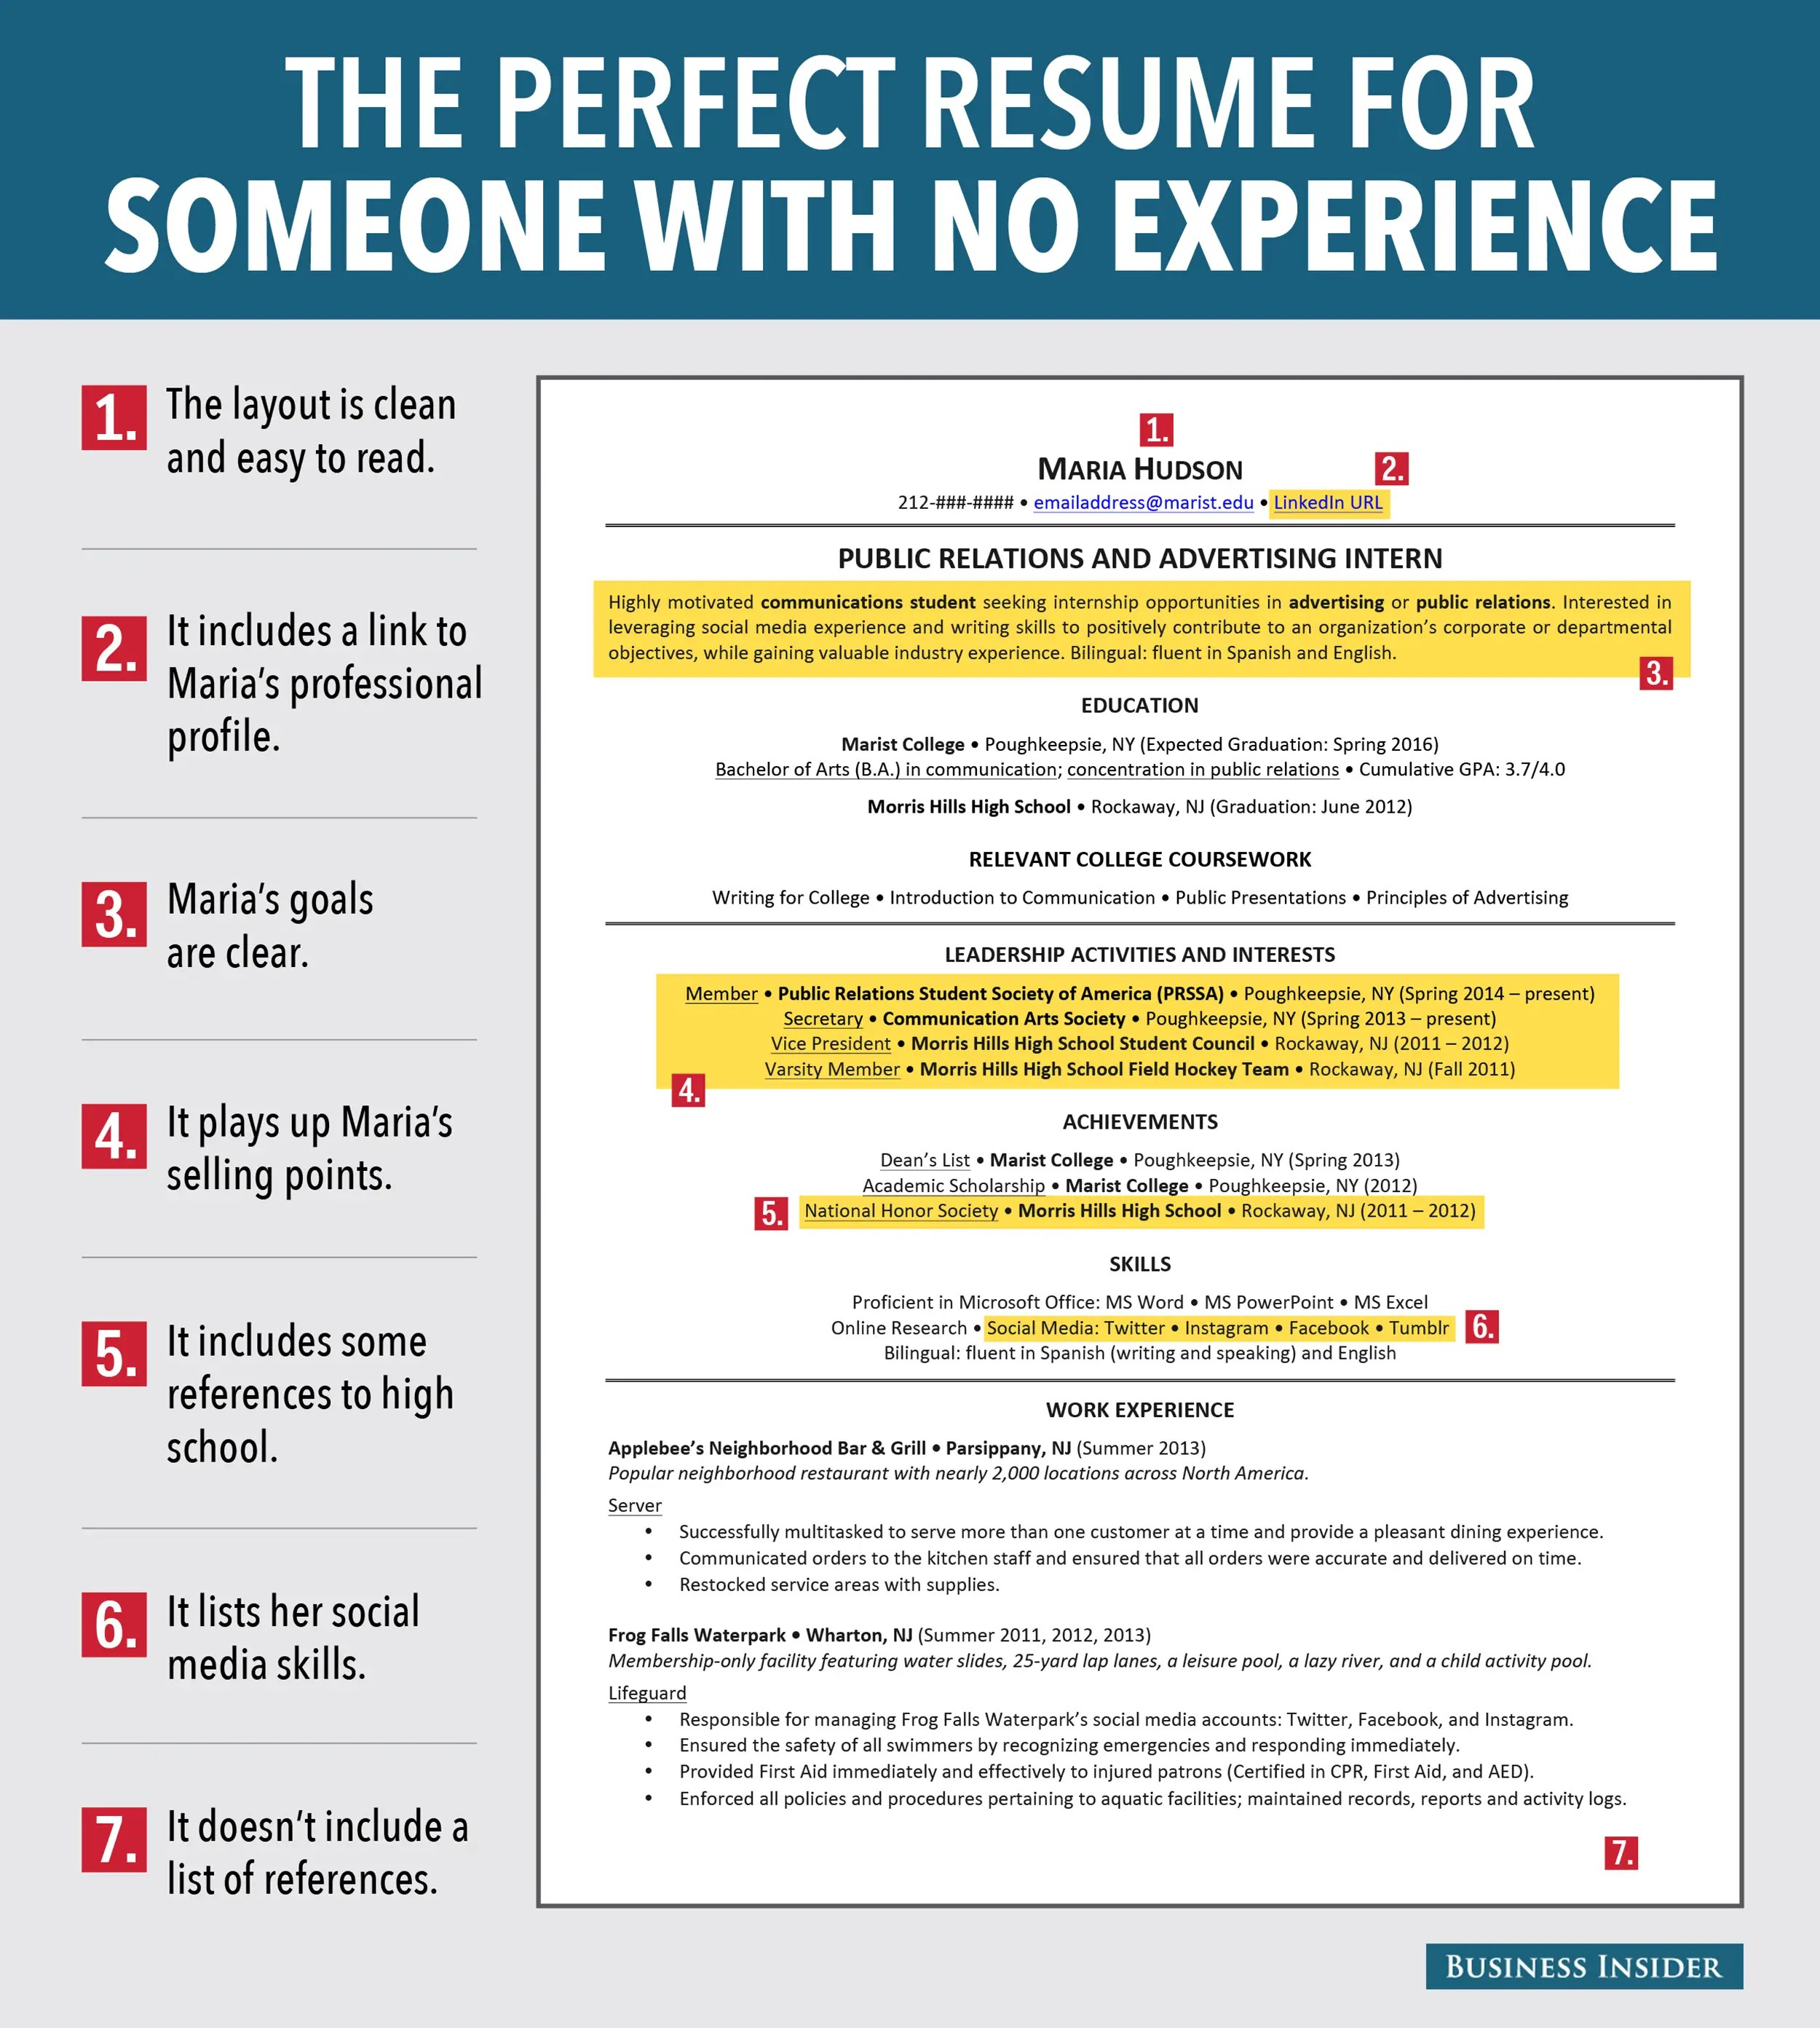 Resume For Job Seeker With No Experience - Business Insider - resumes with no experience